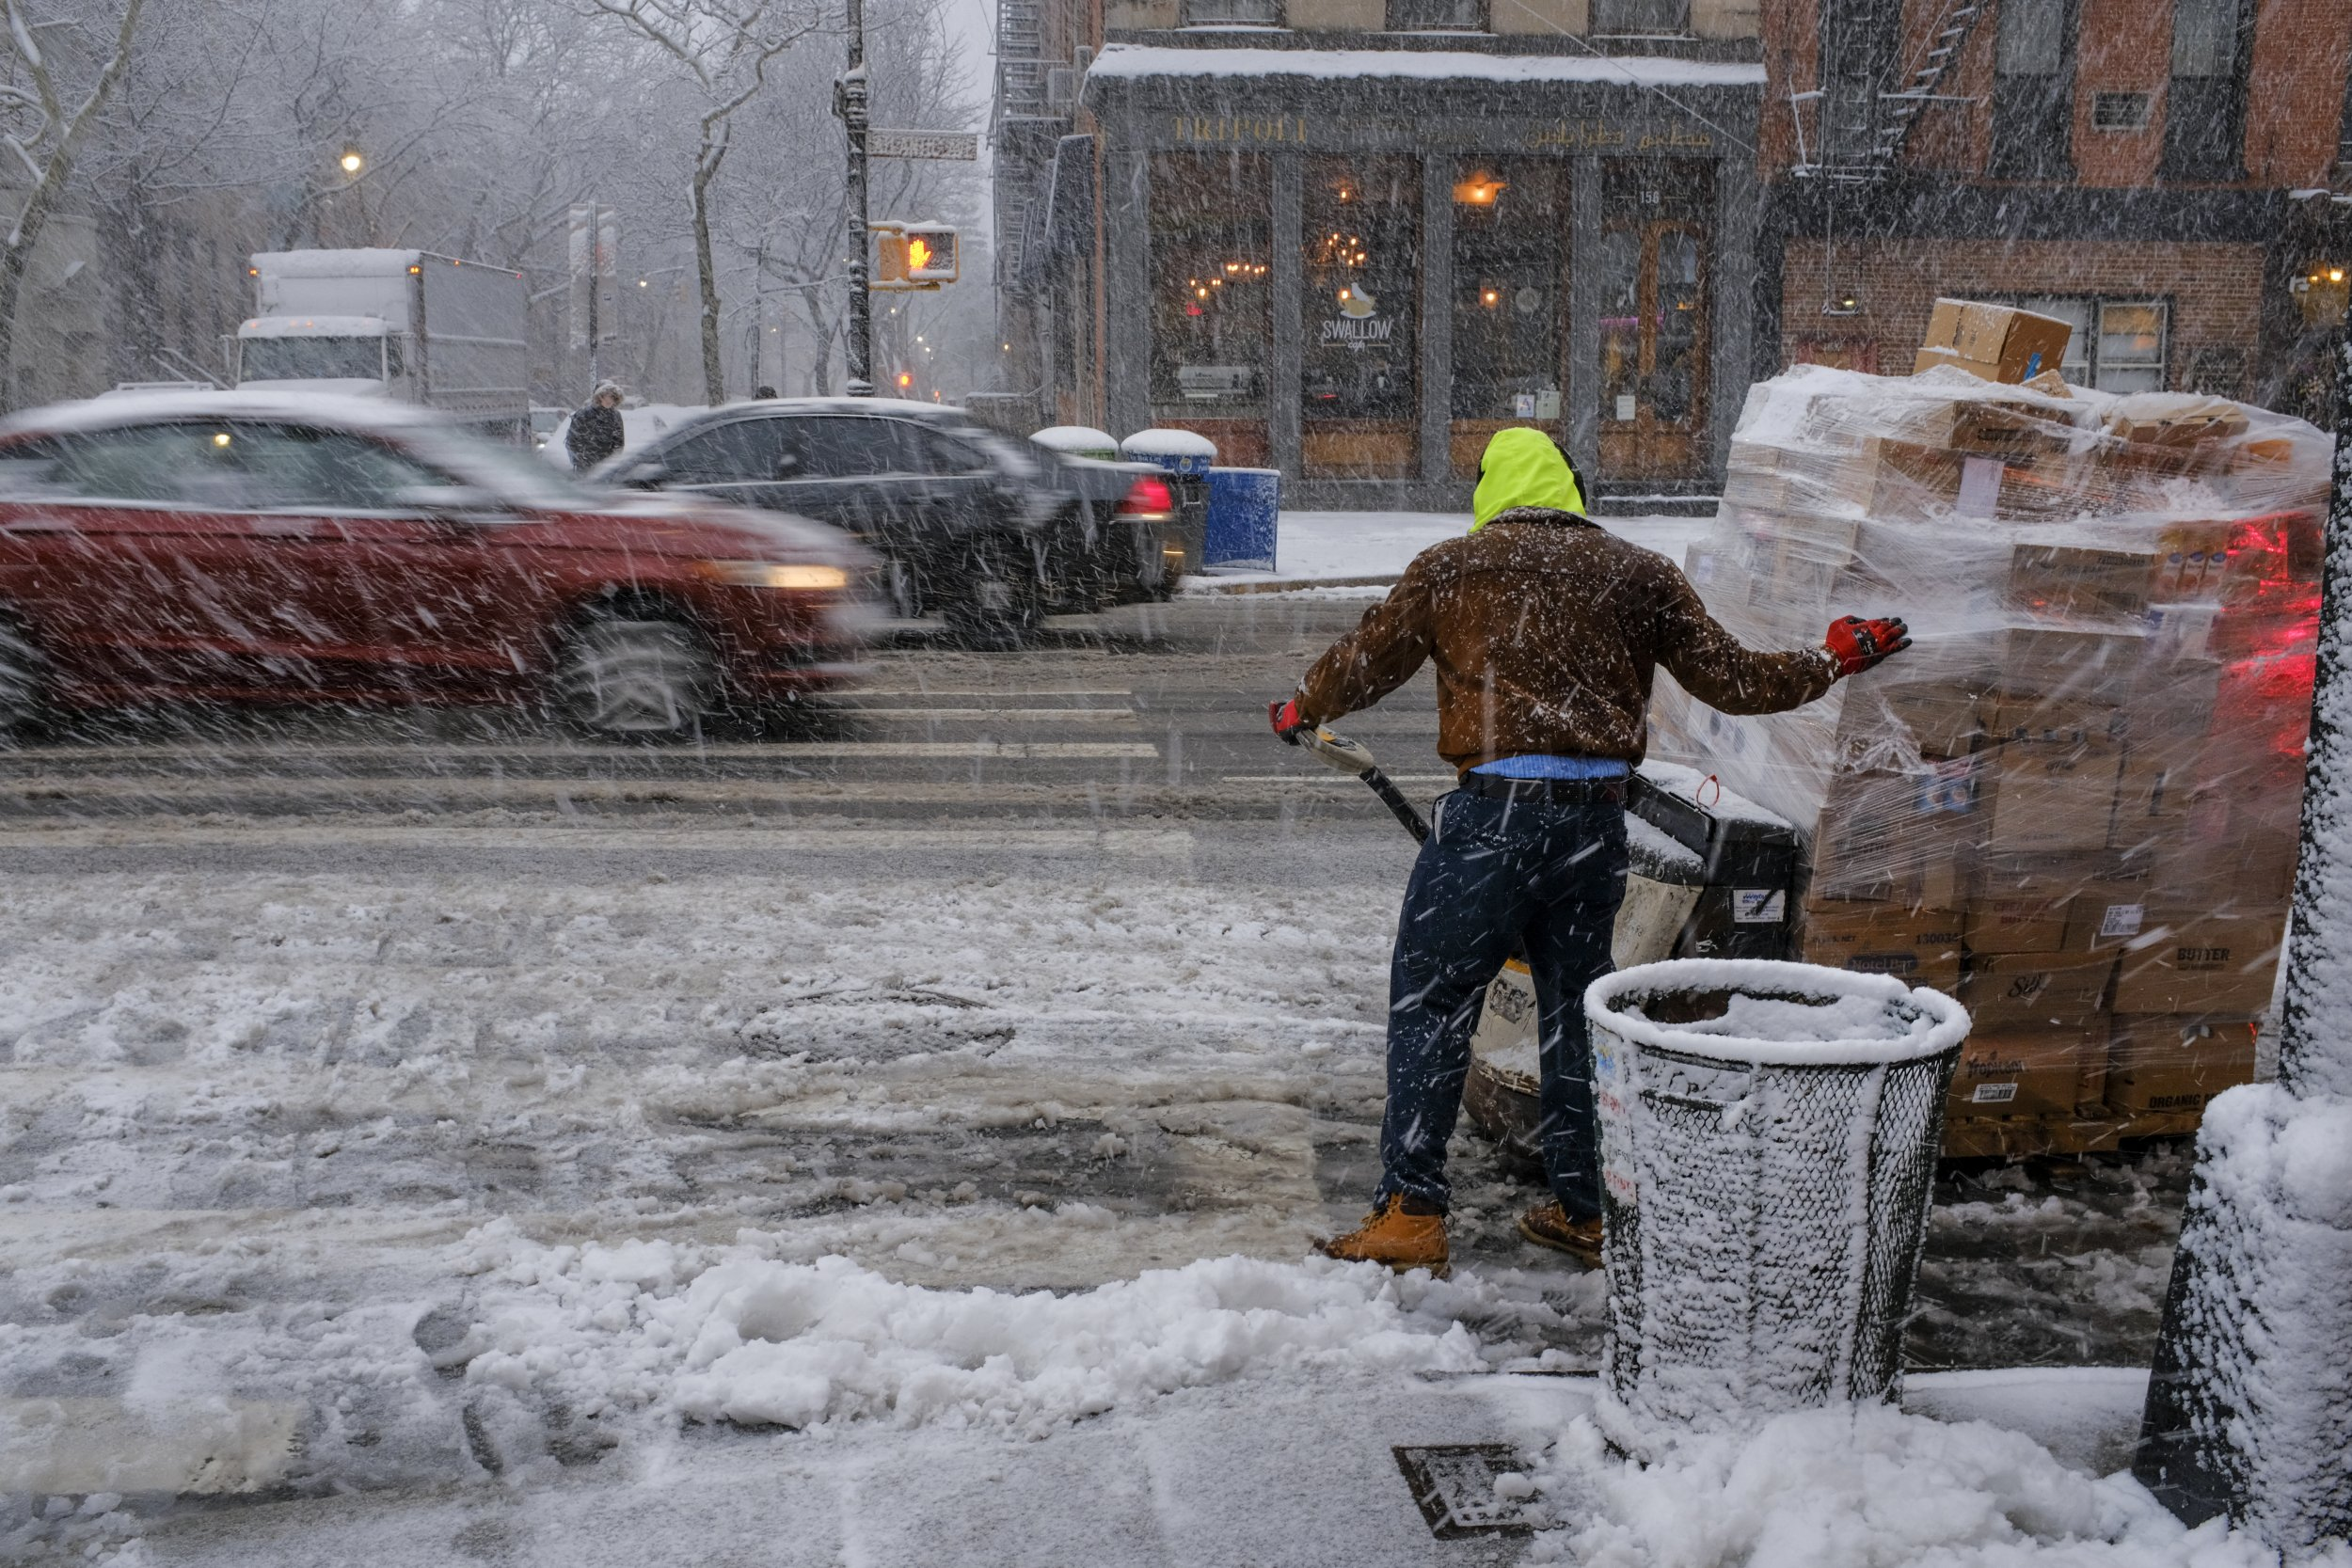 Winter Storm Avery: How Much Snow Will We Get? Forecast For New York, Pennsylvania, New Jersey, D.C.